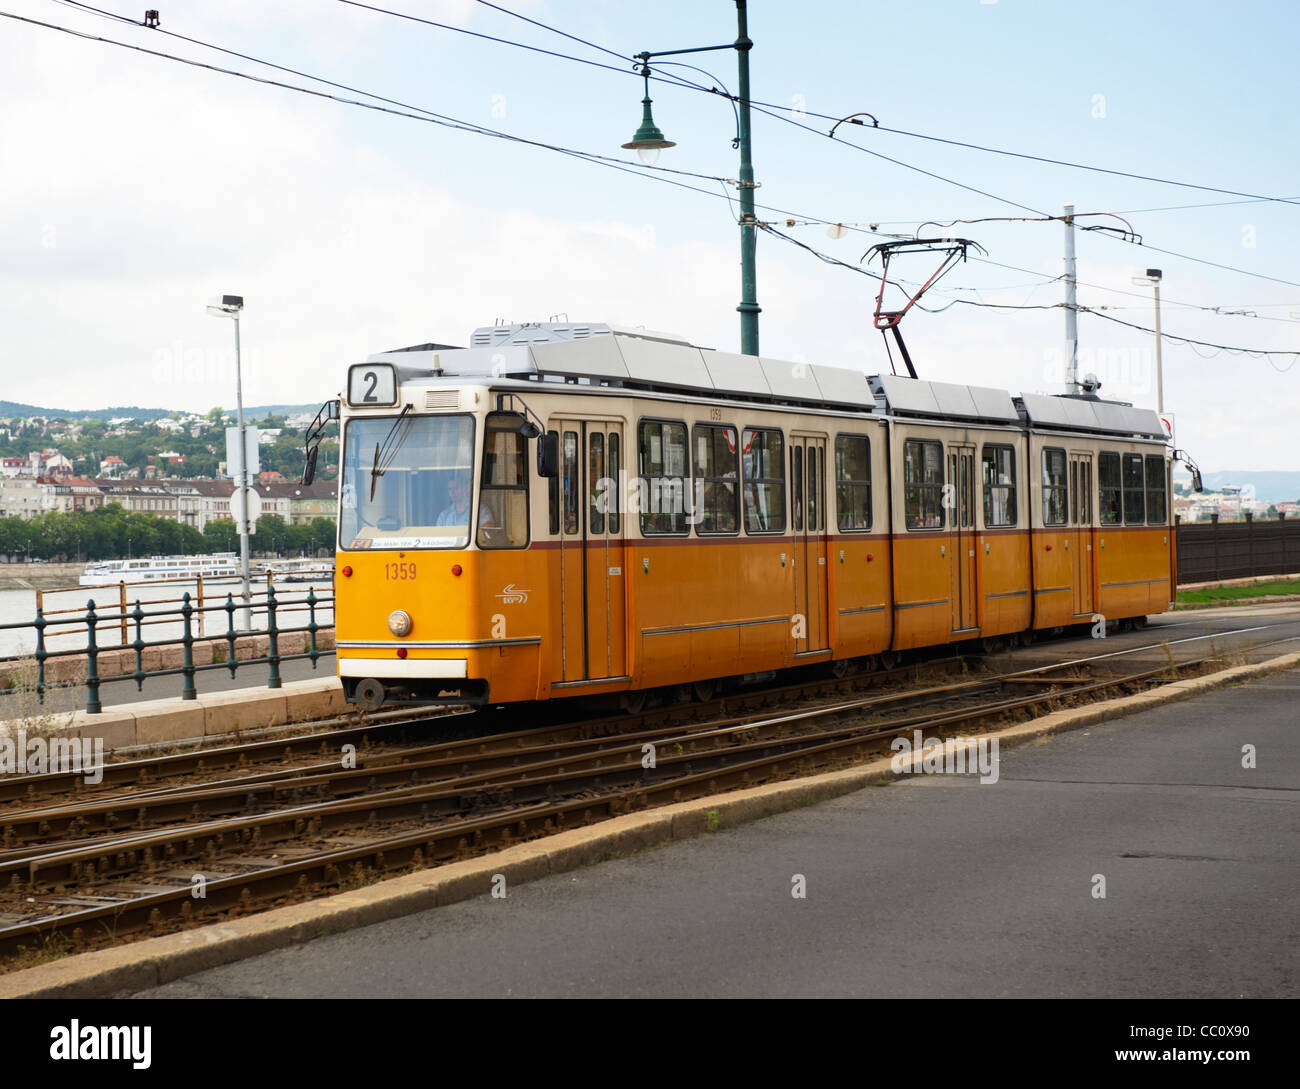 Electric trams form part of the public transport system in Budapest, Hungary, Europe Stock Photo